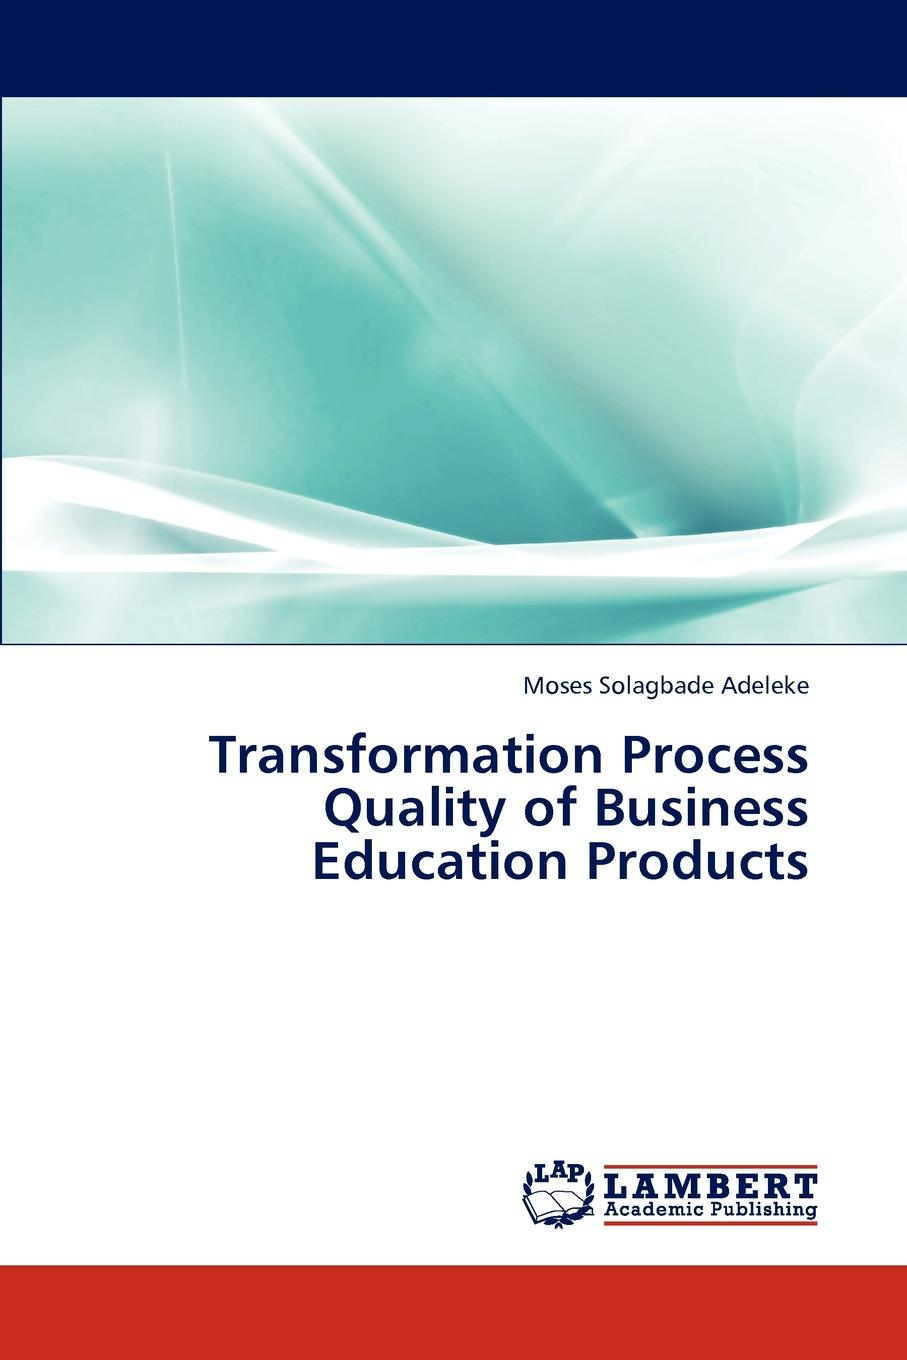 Adeleke Moses Solagbade Transformation Process Quality of Business Education Products new original 18 npn input 14 transistor output xcc 32t e plc